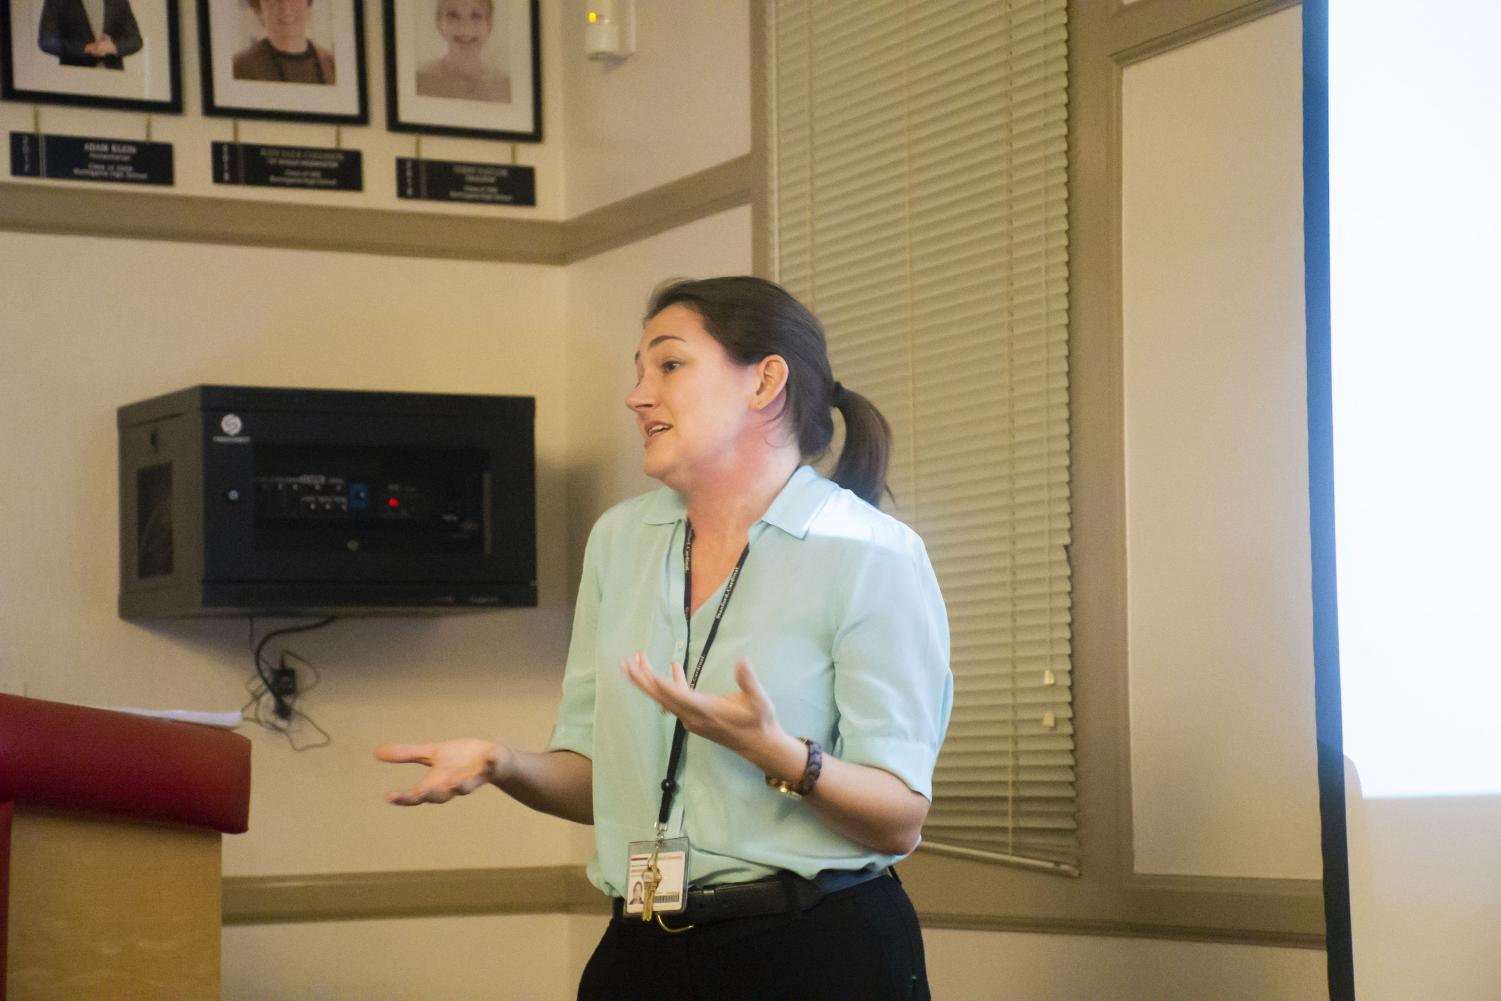 Dr. Kimberly Rosania informs parents of San Mateo Union High School District students about how to seek treatment for their loved ones suffering from eating disorders.